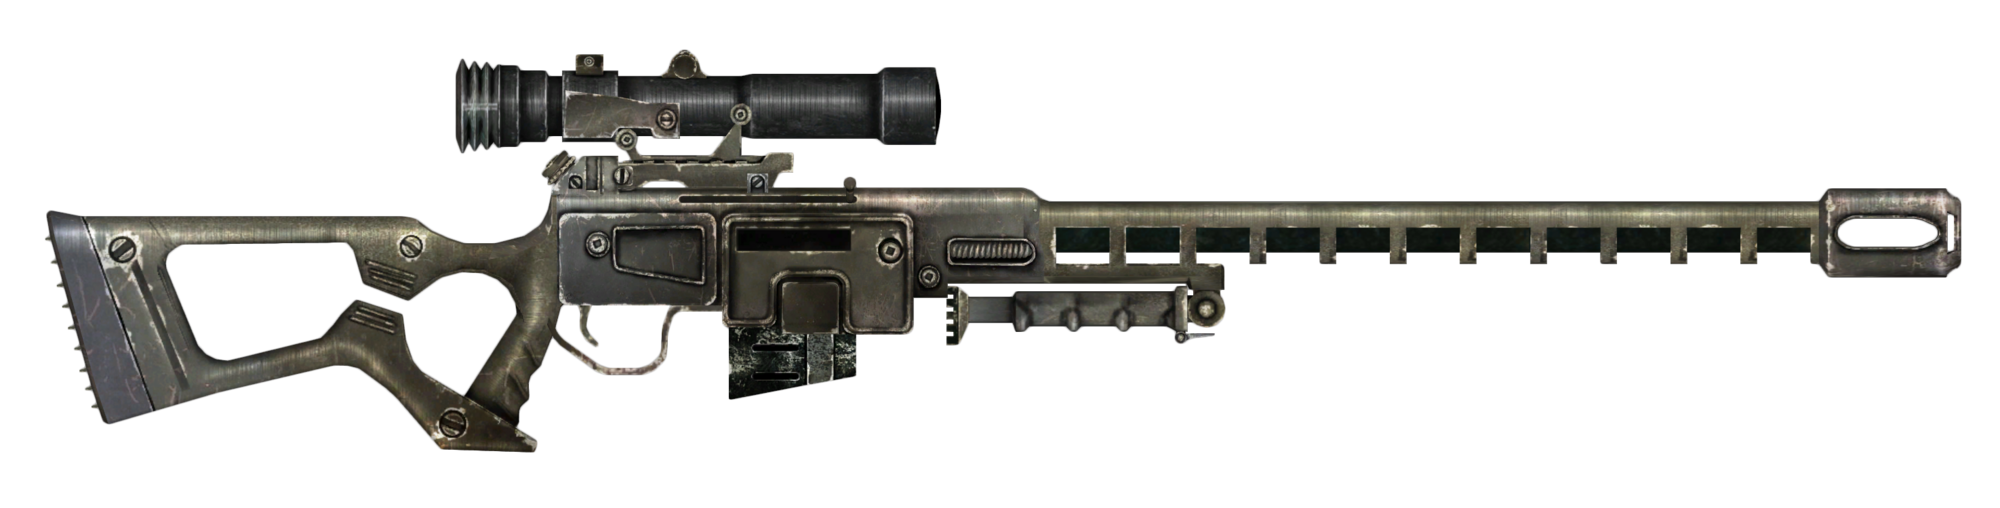 Sniper rifle (Fallout 3) | Fallout Wiki | FANDOM powered by